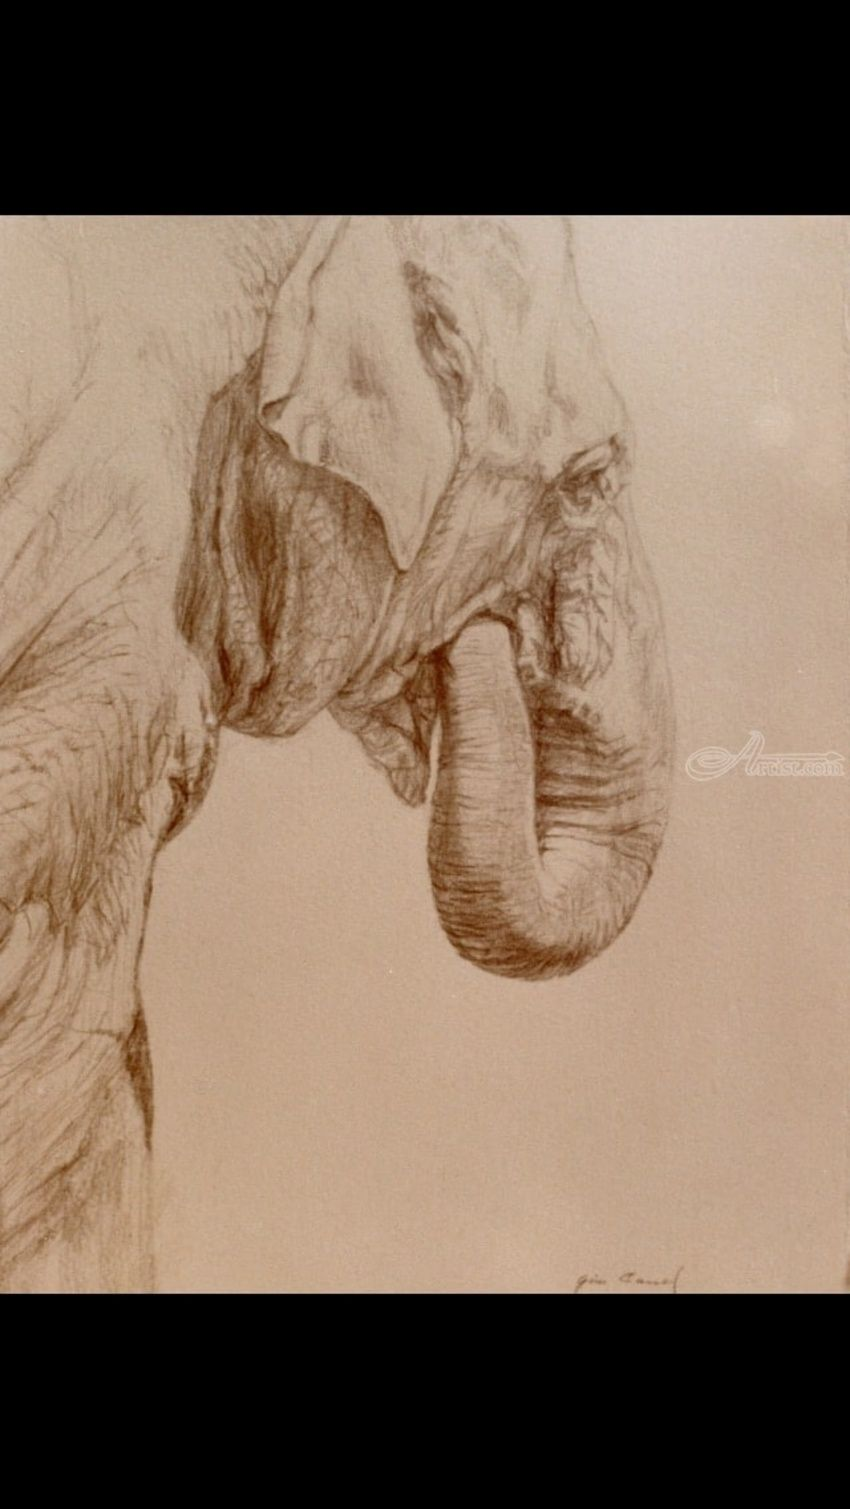 Elephant, Drawings / Sketch, Fine Art,Realism, Anatomy,Animals,Daily Life,Documentary,Figurative,Found Objects,Happenings,Humor,Inspirational,Moving Images,Narrative,Portrait,Spiritual,Wildlife,Window on the World, Pencil, By James Cassel